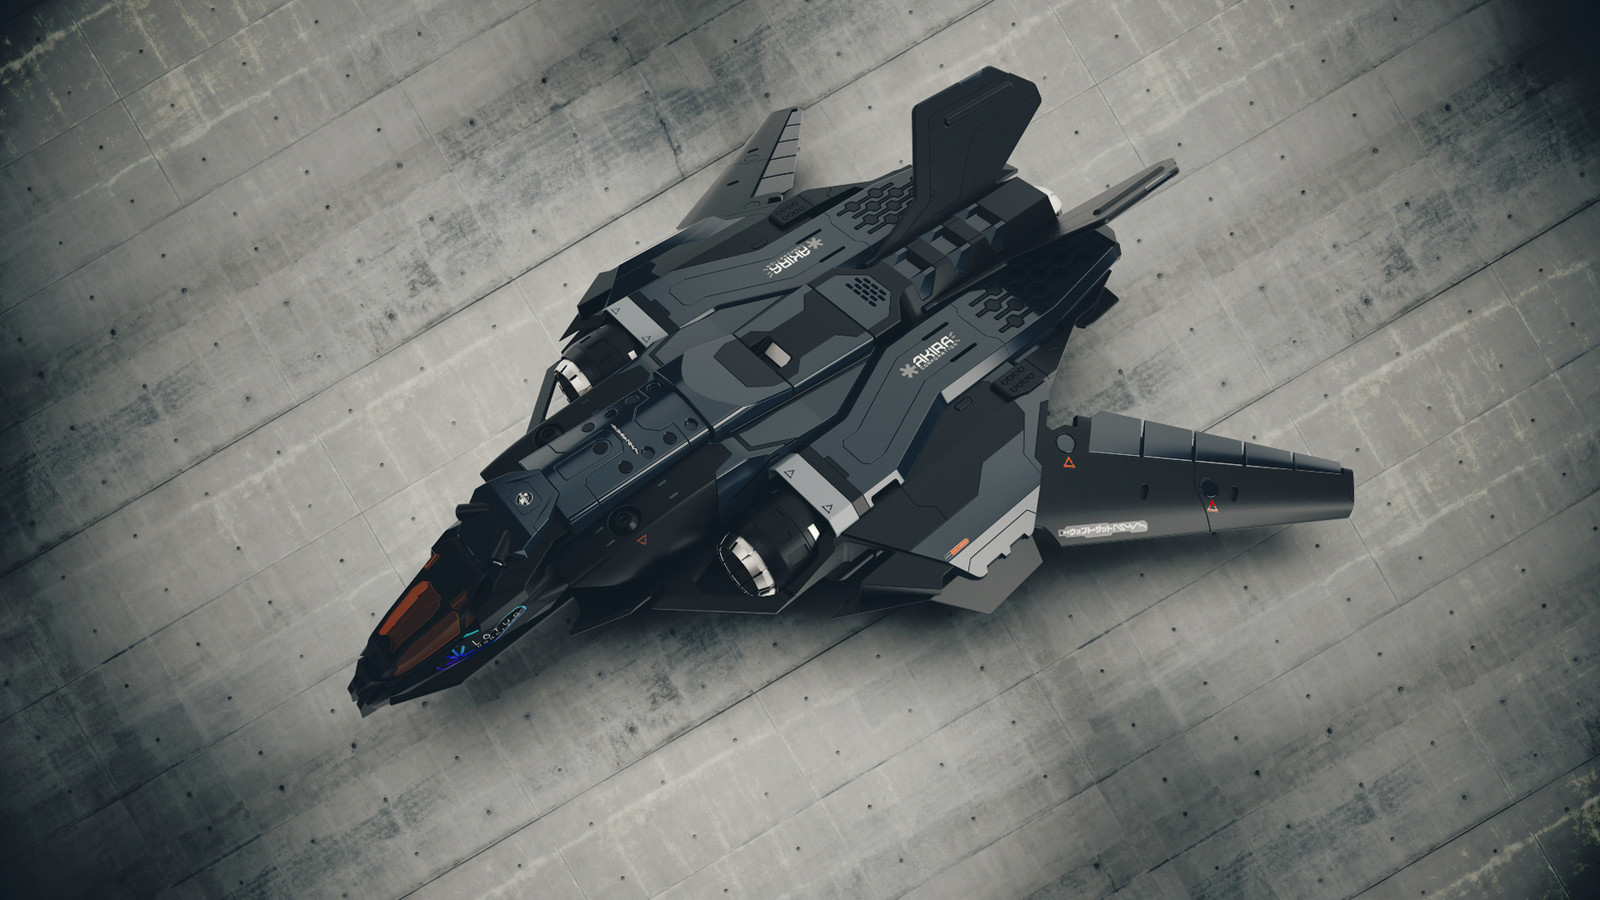 The Reaper - aka Sabre - Harsurface Spaceship